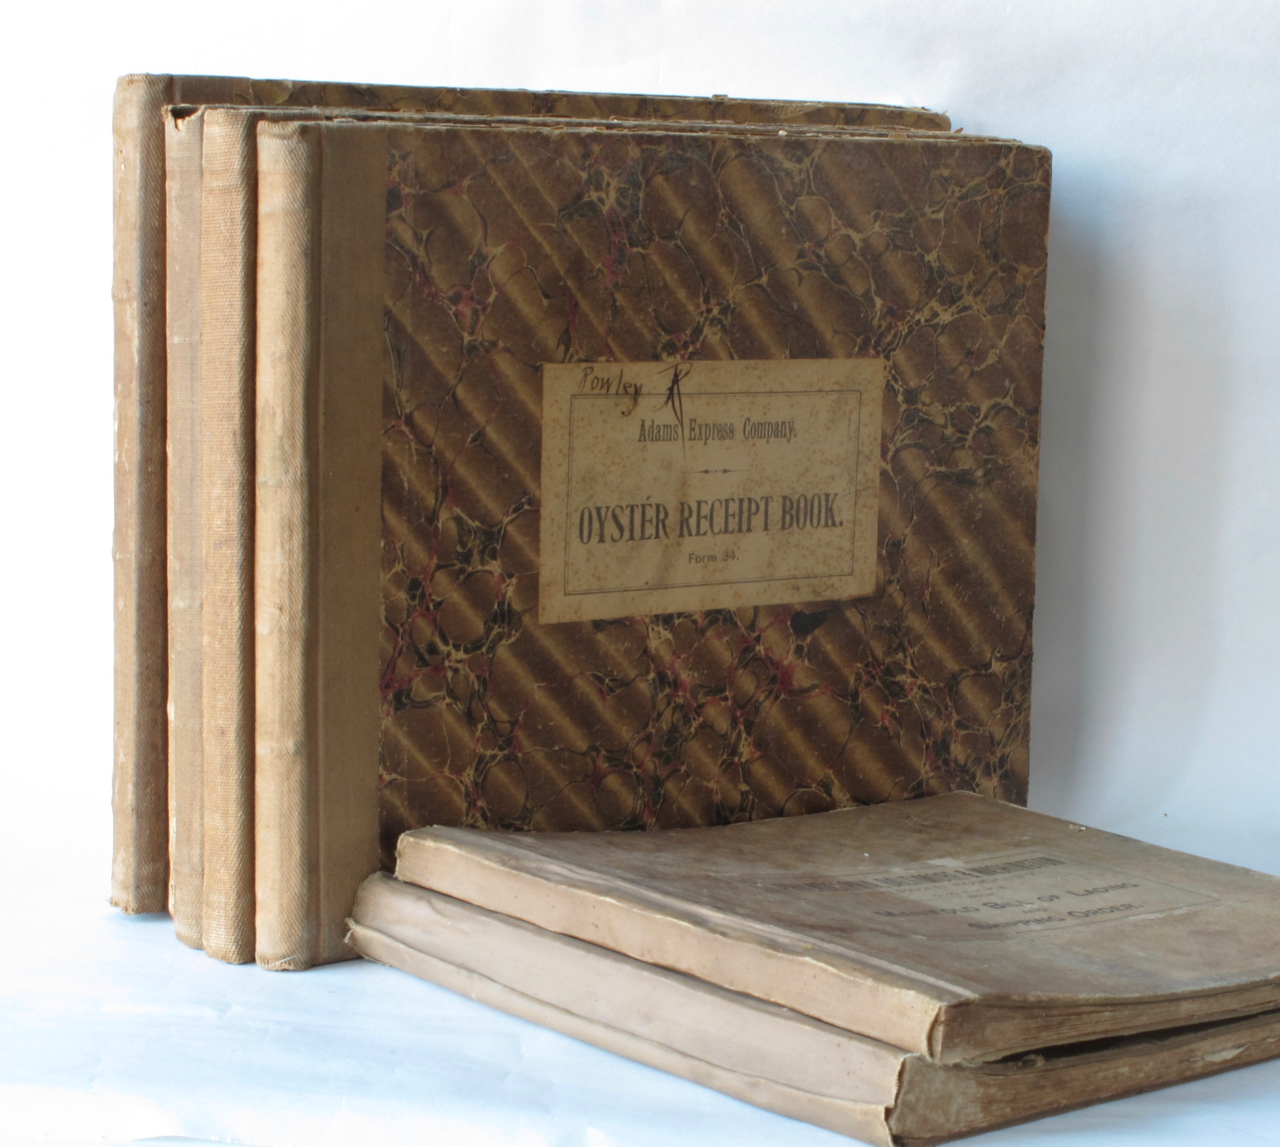 [Oyster Receipt Book. Form 34; with: Manifold Bill of Lading and Shipping Order; G-22-d-A.F.R. Book]. Oysters – transportation, Adams Express Company, Baltimore Philadelphia, Washington Railroad Company.